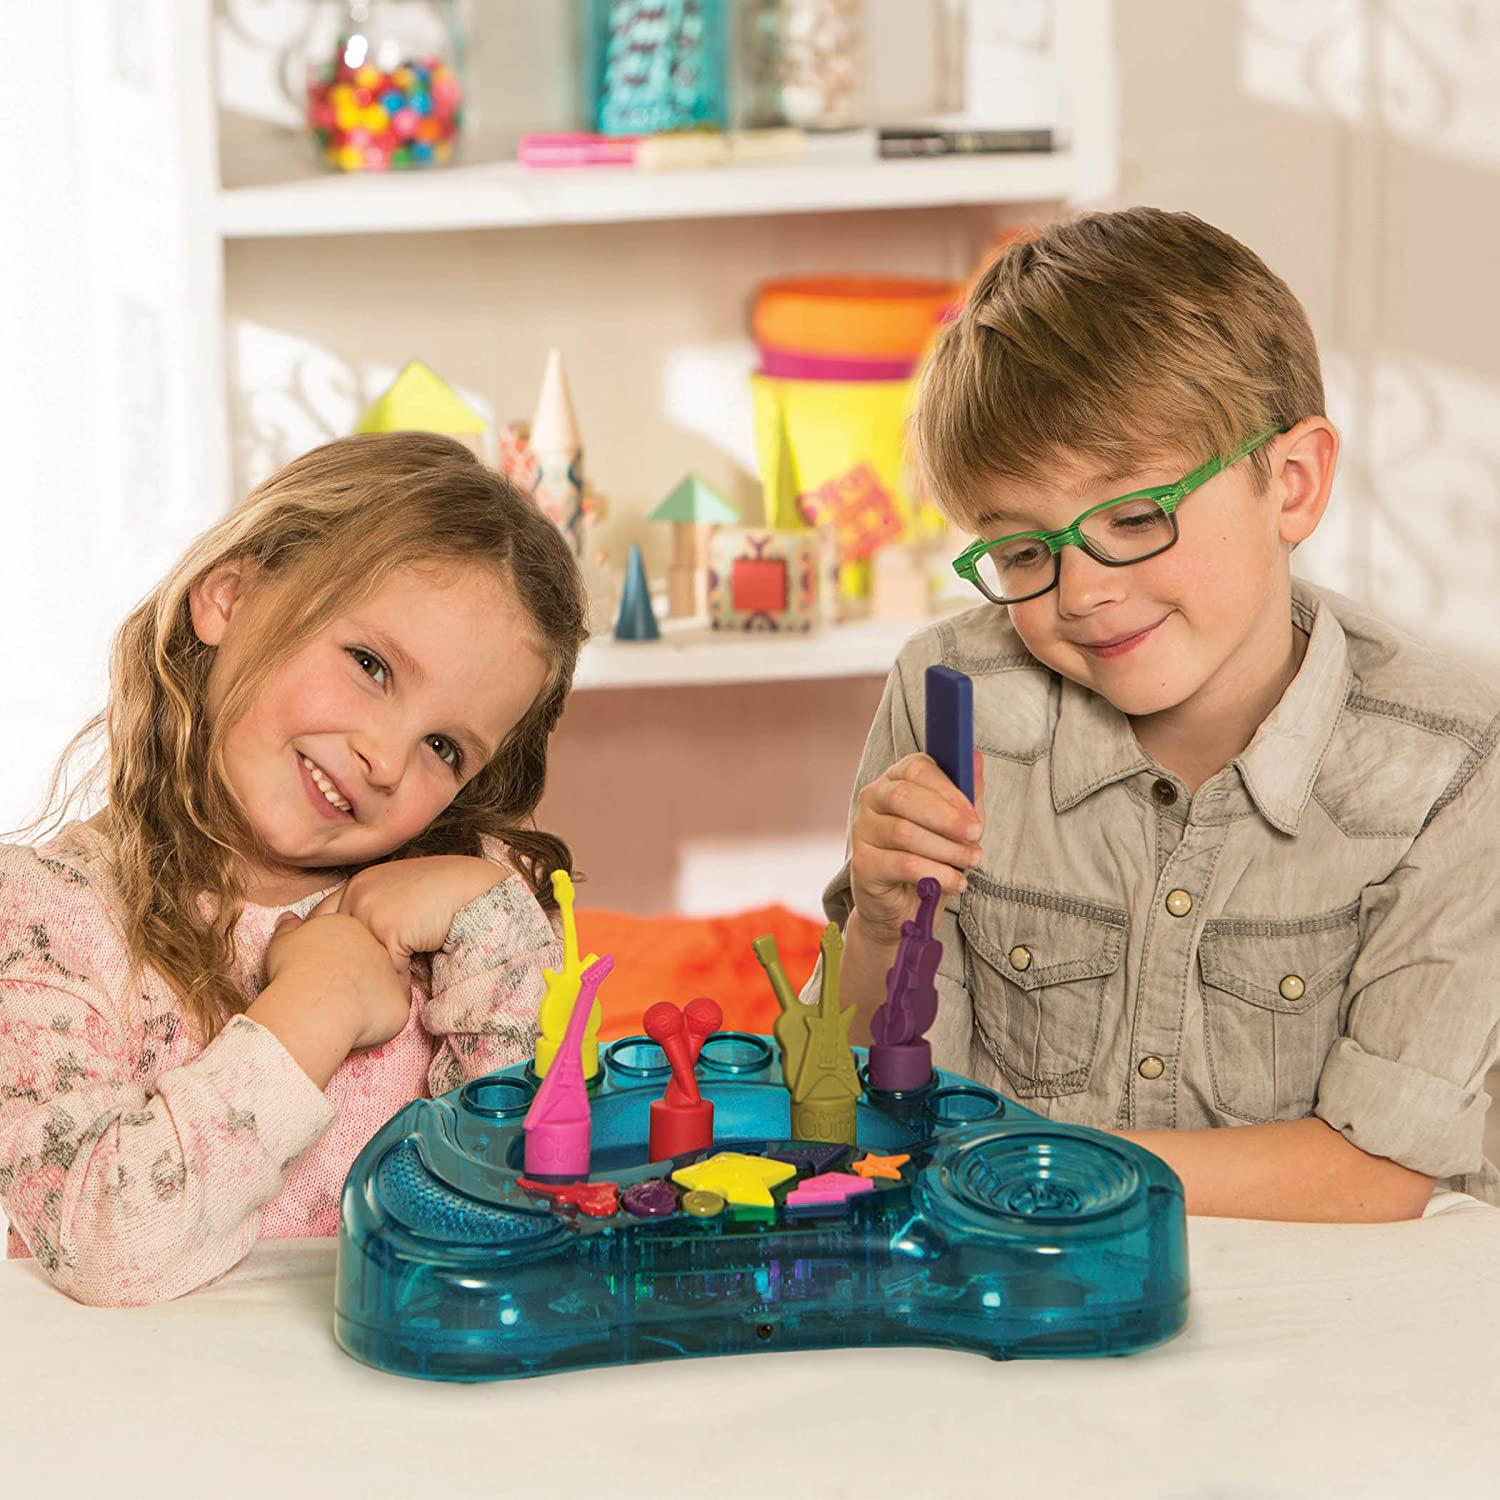 toys B 15 Songs 7 Musical Instruments On an Interactive Light-Up Music Orchestra For Toddlers 3 years + Rockestra